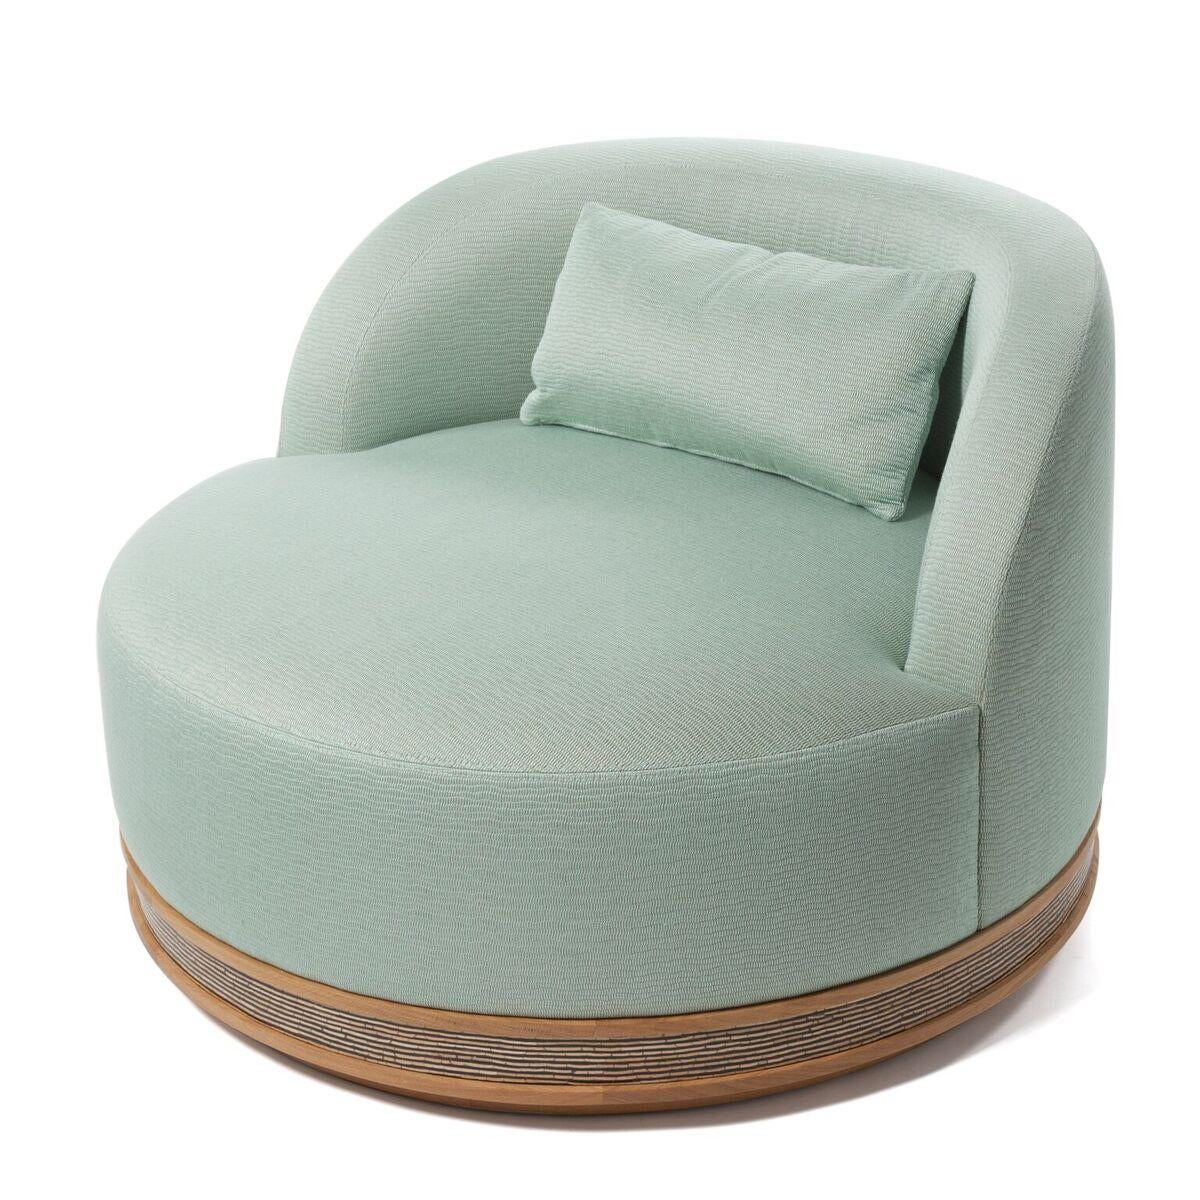 Round Armchair With Swiveling Seat Upholstered With A Linen Fabric...Beech  Frame And